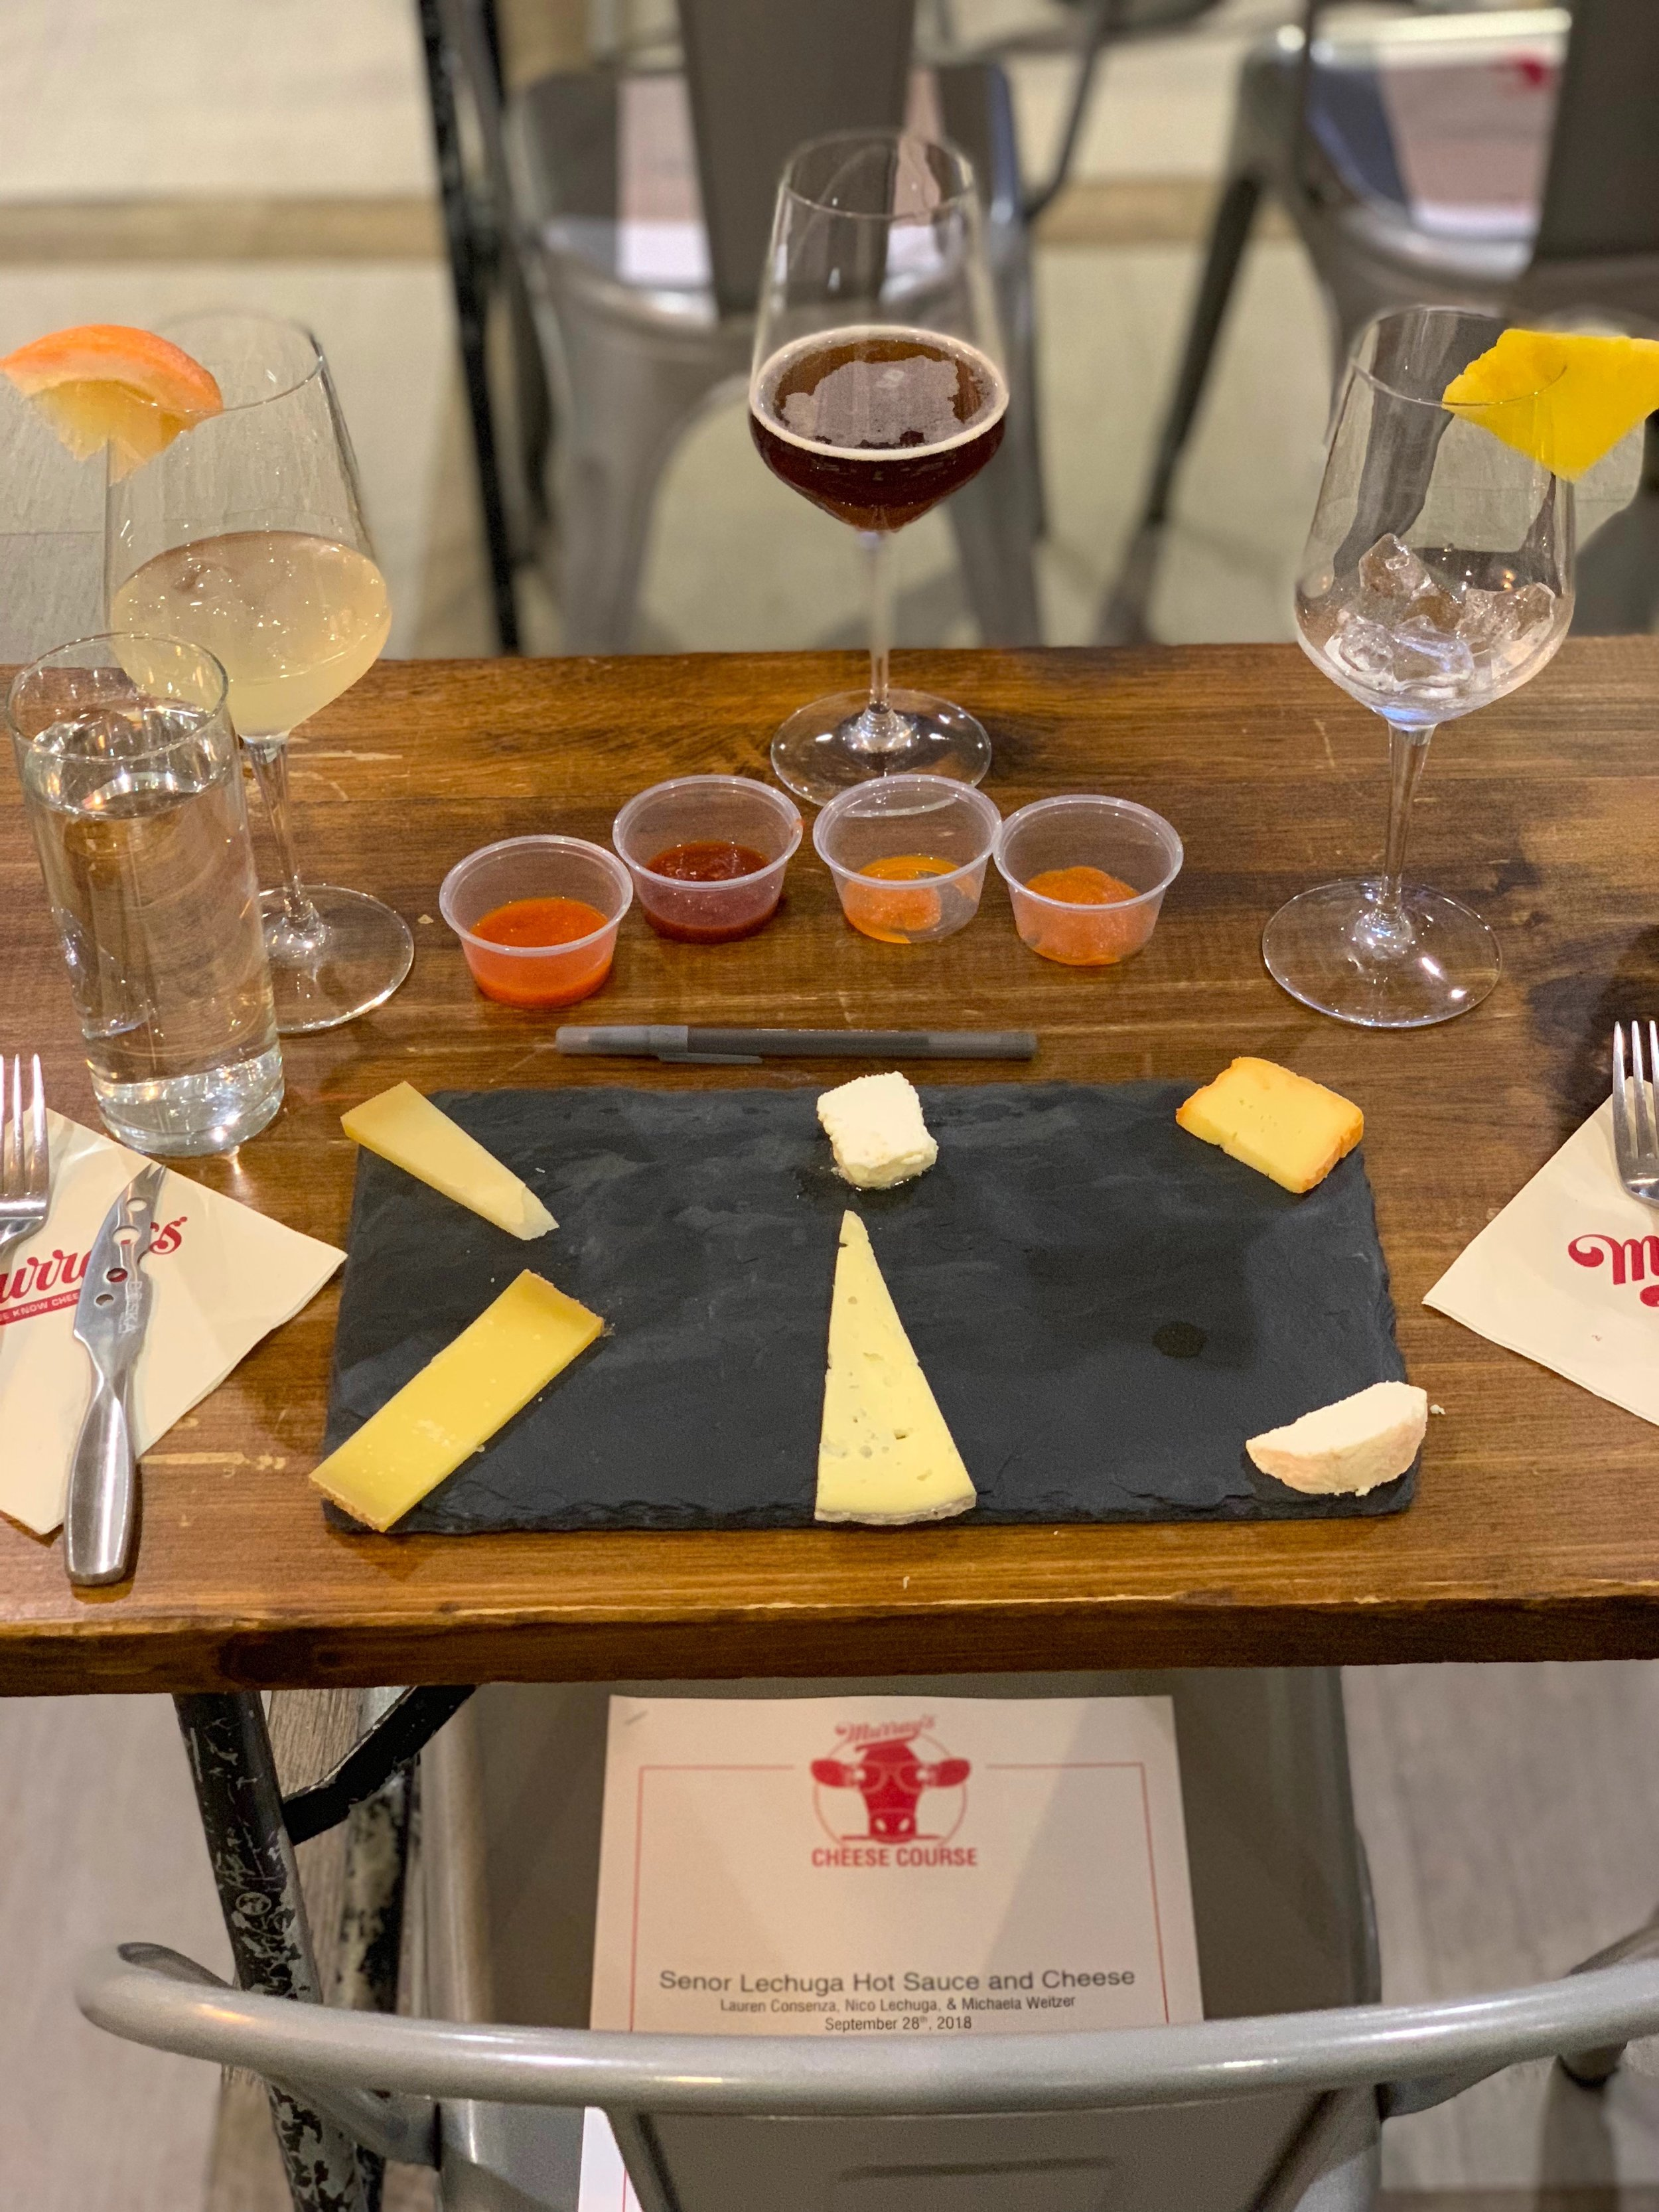 MURRAY'S CHEESE   Name a more iconic duo than hot sauce and cheese!  At these fun classes we co-host with the super knowledgable and talented Murray's team, we pair our hot sauces with their cheeses for an unbelievable tasting and learning experience.  There's also Señor Lechuga Hot Sauce infused spirits and cocktails made custom for the classes, as well as unlimited beer, to complement the cheeseboard selections.  These classes always sell out in advance so check the Murray's calendar for our next one!